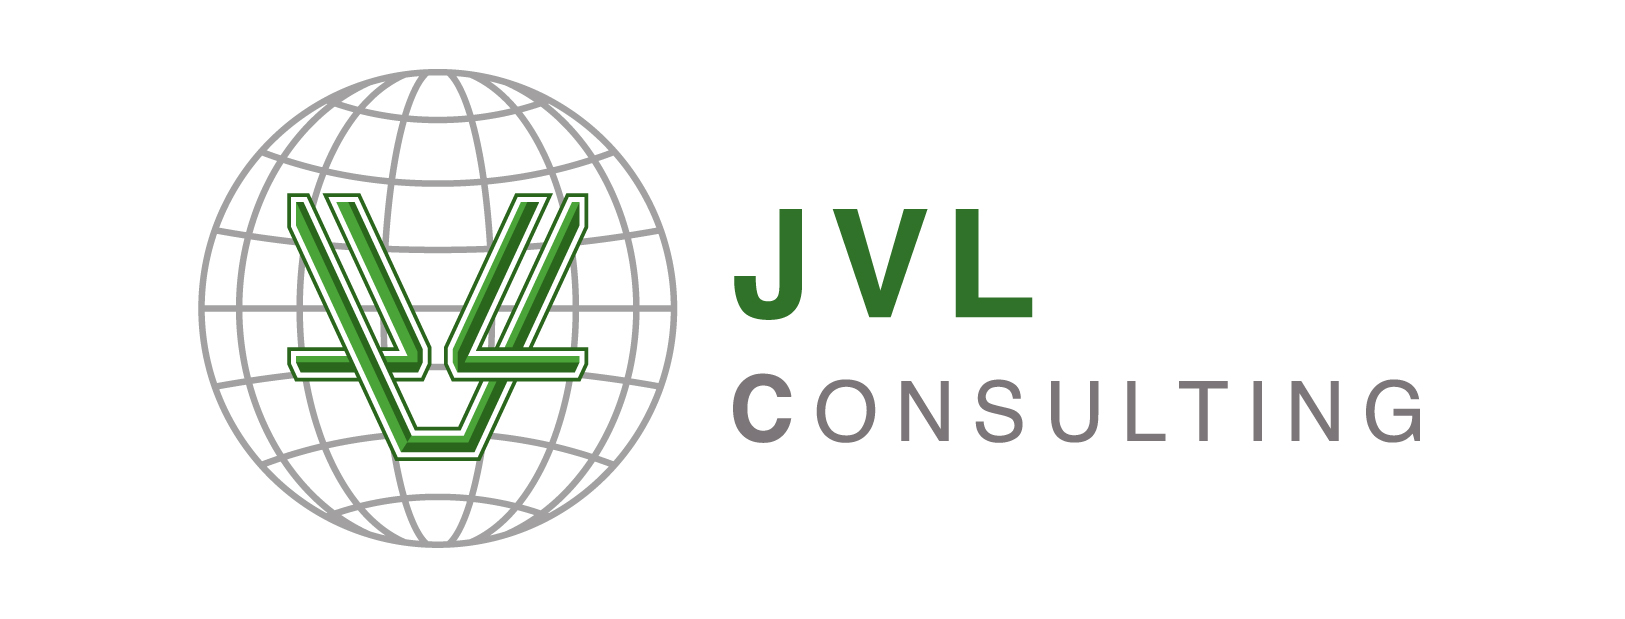 JVL Consulting